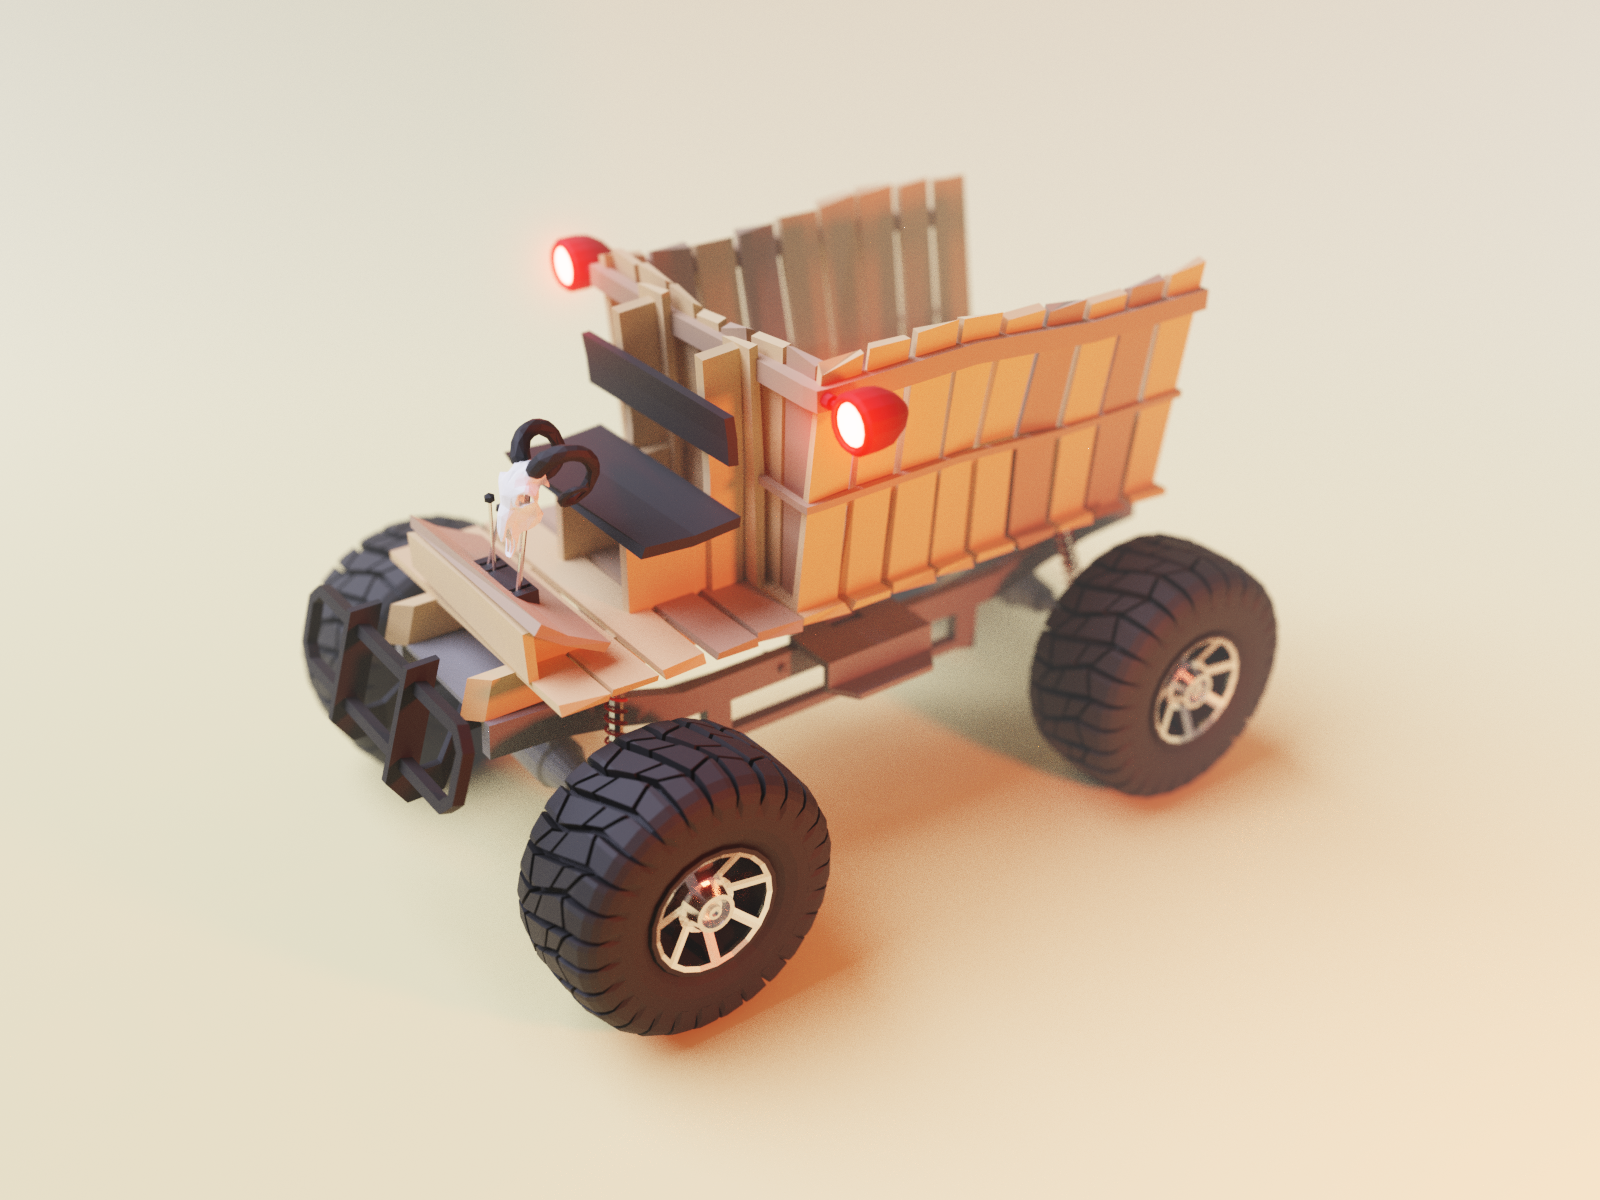 Wooden Cart 4x4 cart offroad car model lowpoly render design blender 3d illustration